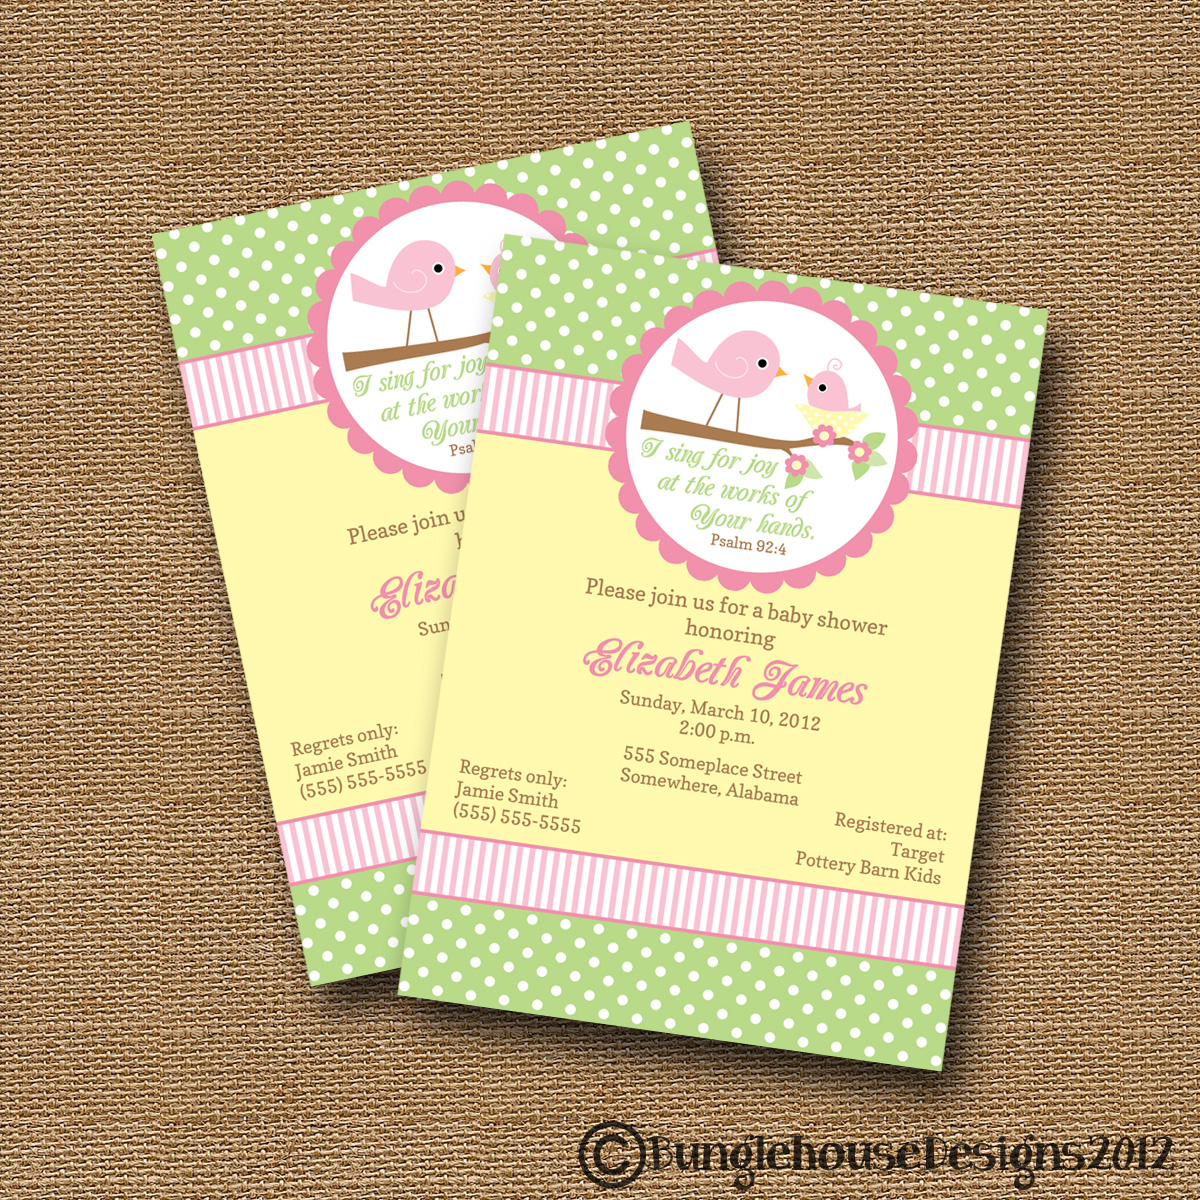 more baby shower invitations or these would be so cute for birthday